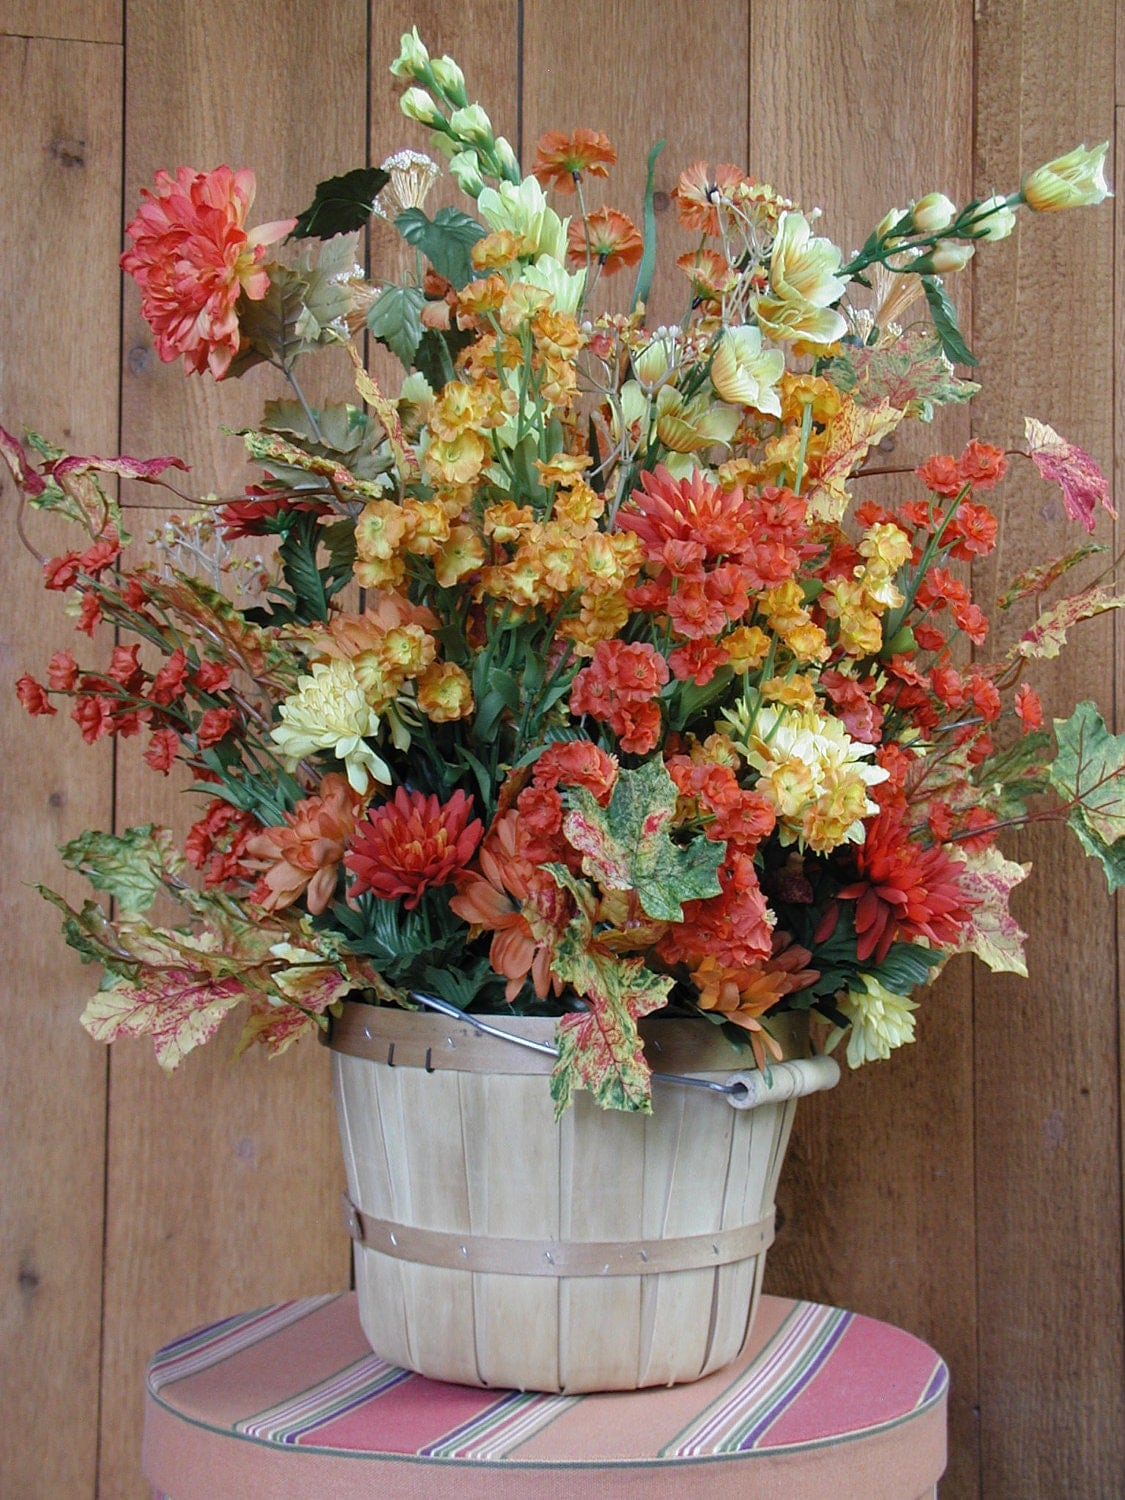 Fall Floral Arrangement in Wooden Basket by rrdesigns561 on Etsy